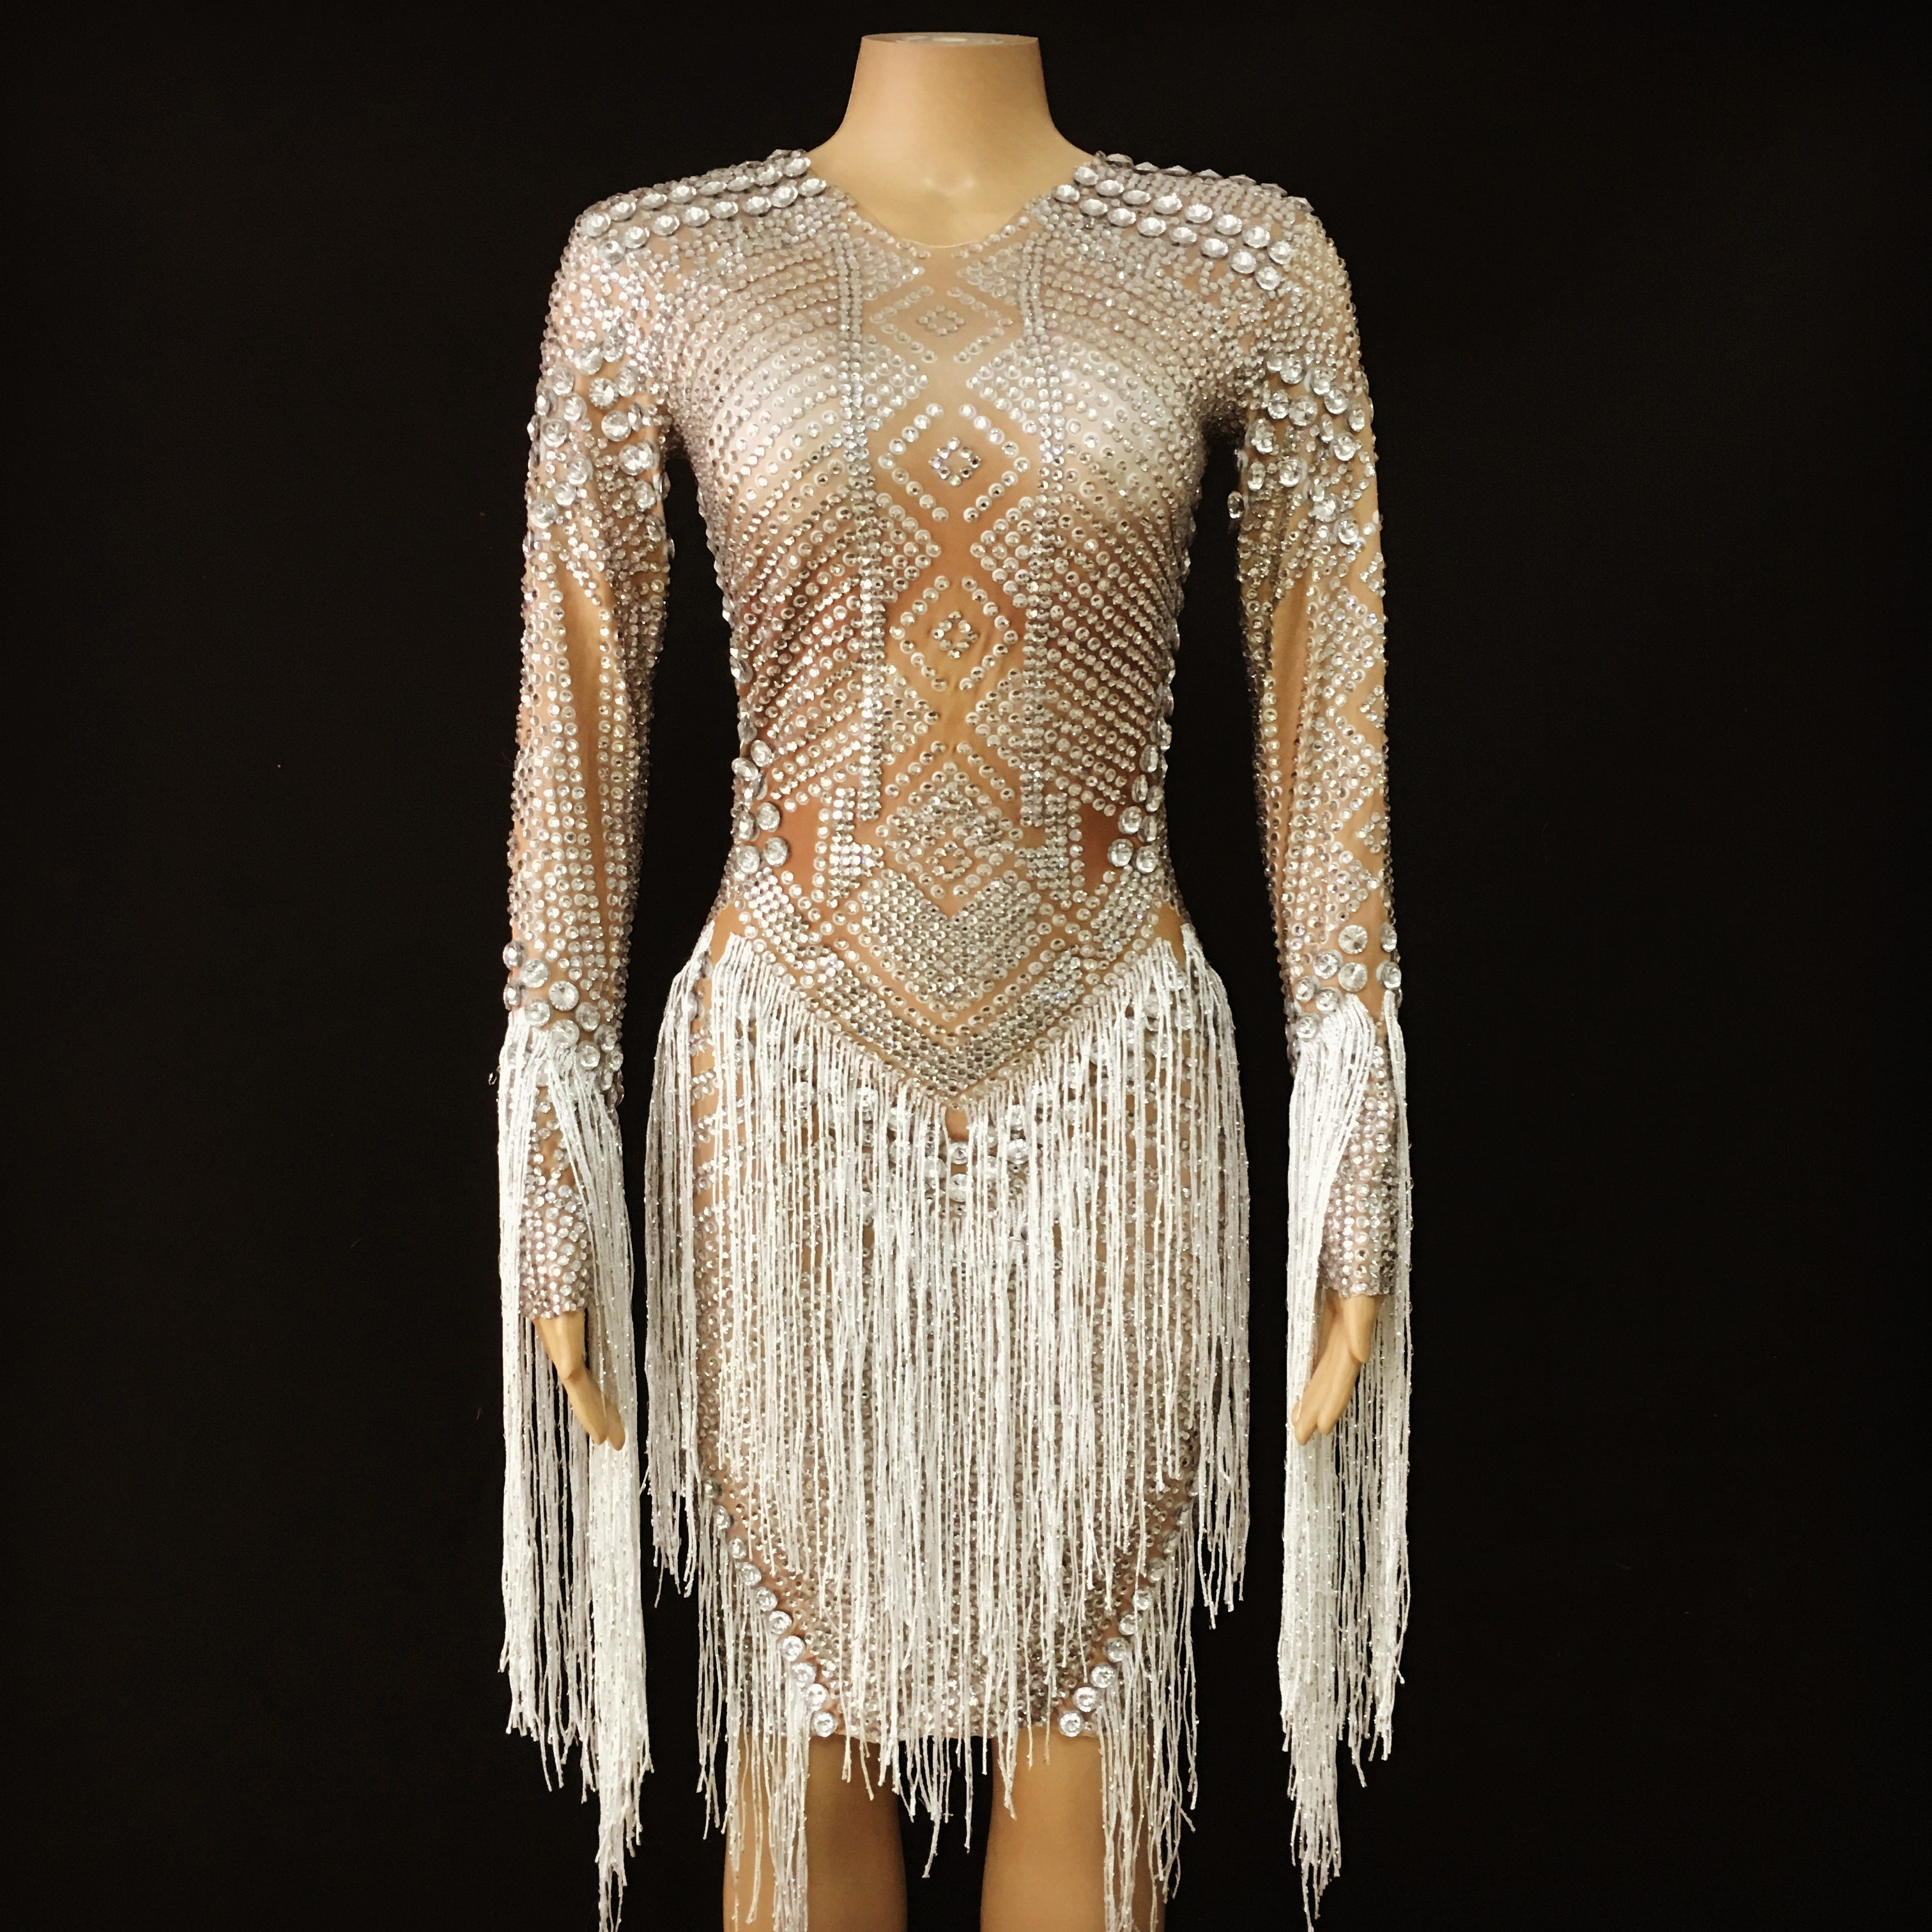 Dress Outfit Dancer Stones Celebrate Tassel Sparkly Strech Birthday Silver Evening White title=